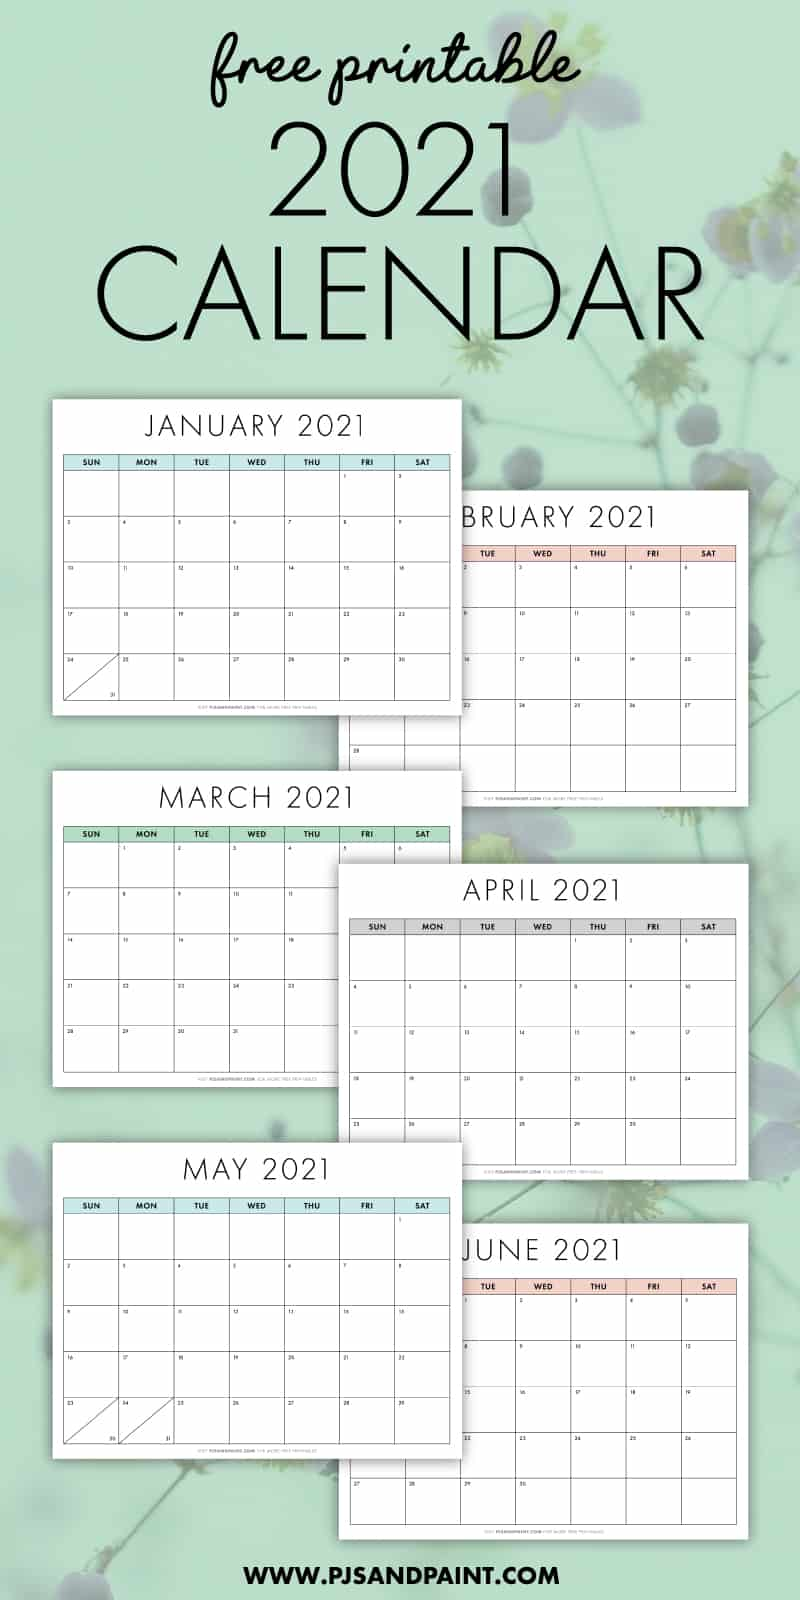 Download a free, printable calendar for 2021 to keep you organized in style. Free Printable 2021 Calendar - Sunday Start - Pjs and Paint